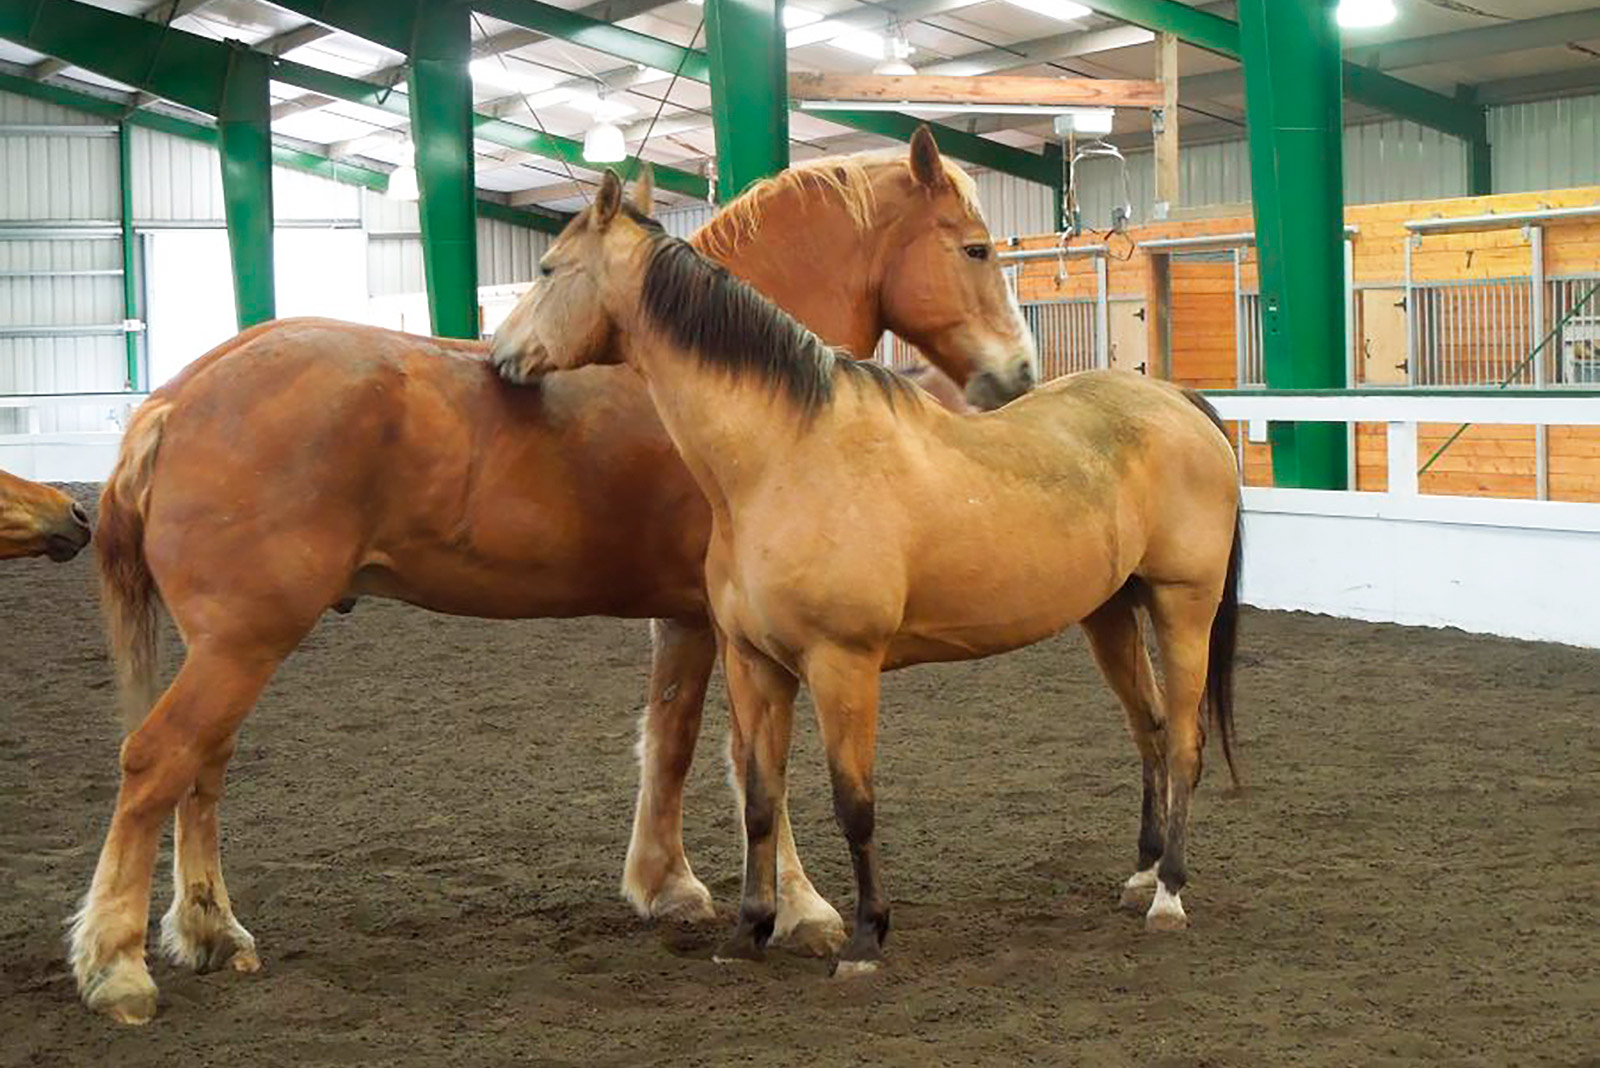 Two horses standing in healing reins arena